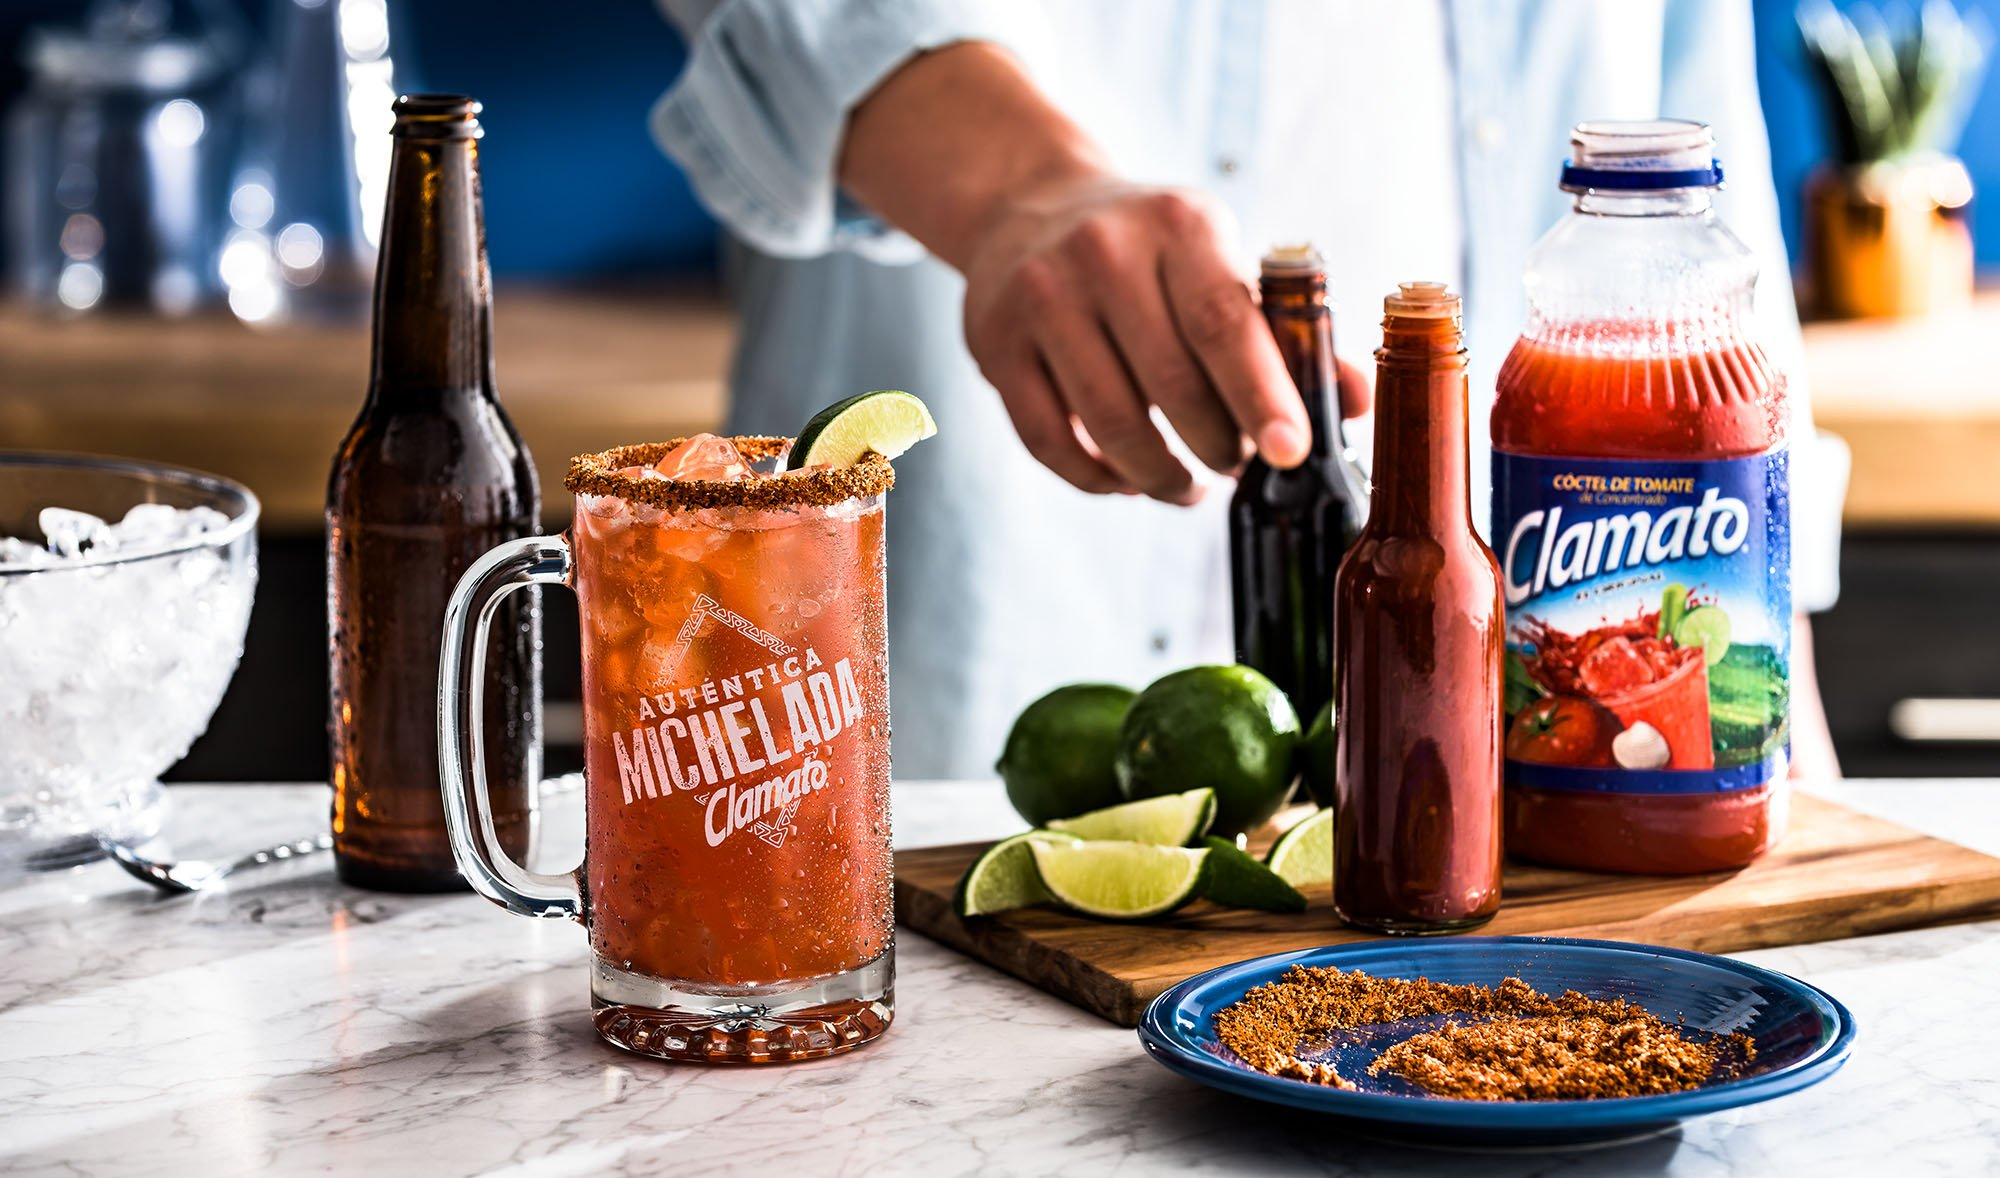 Authentic Clamato Michelada Original Drink Recipe